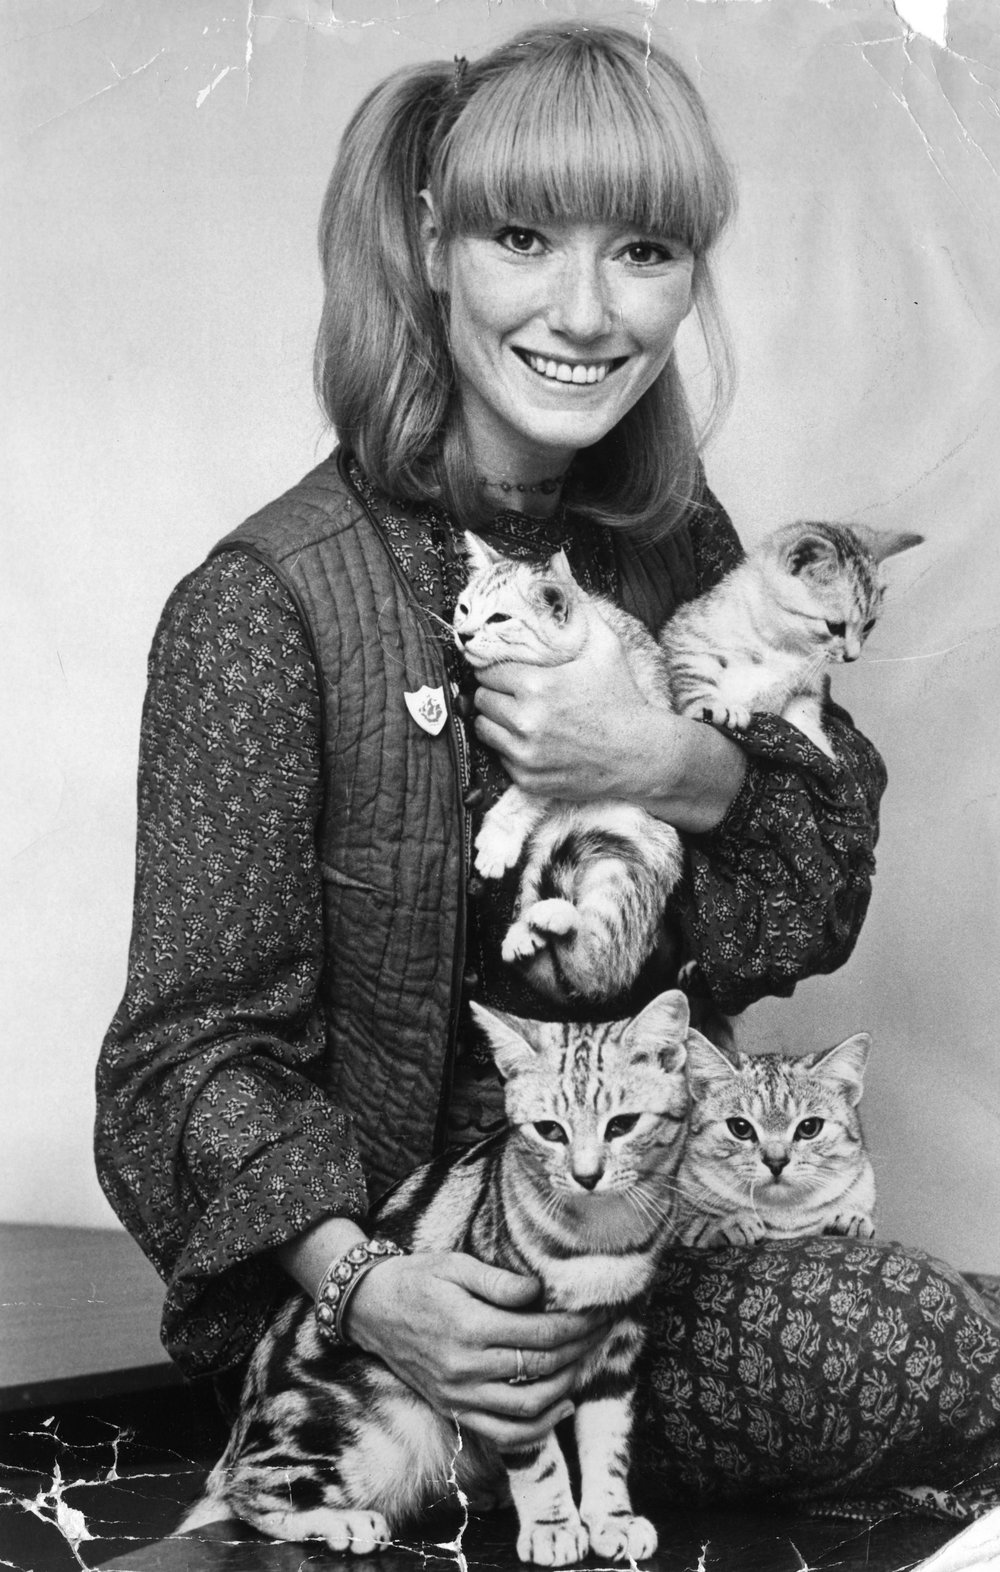 Kittens Jack and Jill having a cuddle with presenter Lesley Judd